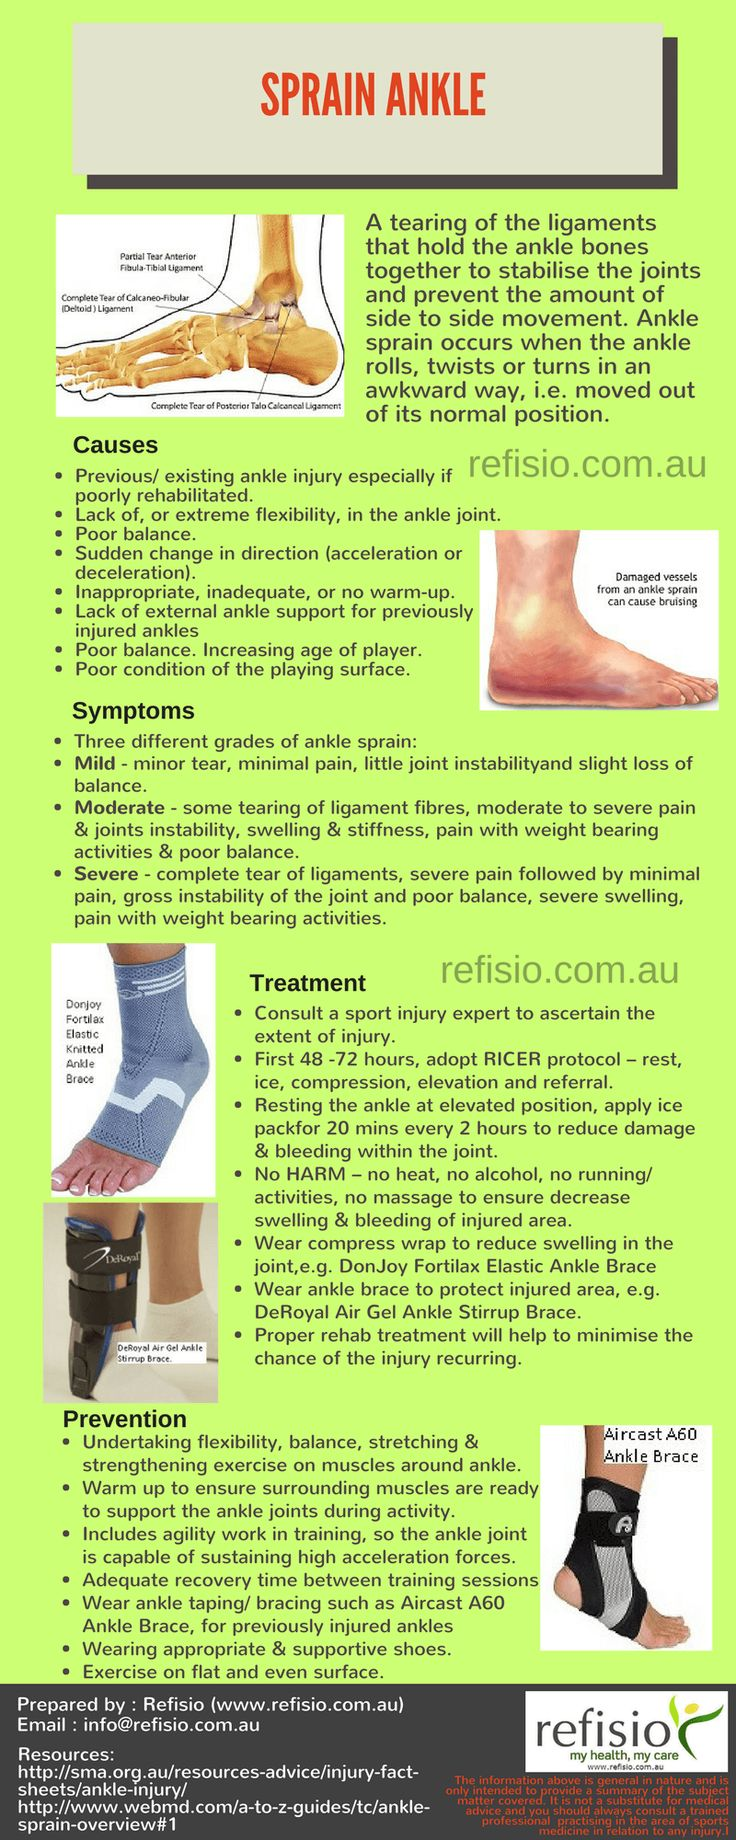 Sprain Ankle - Causes, Symptoms, Treatment and Prevention